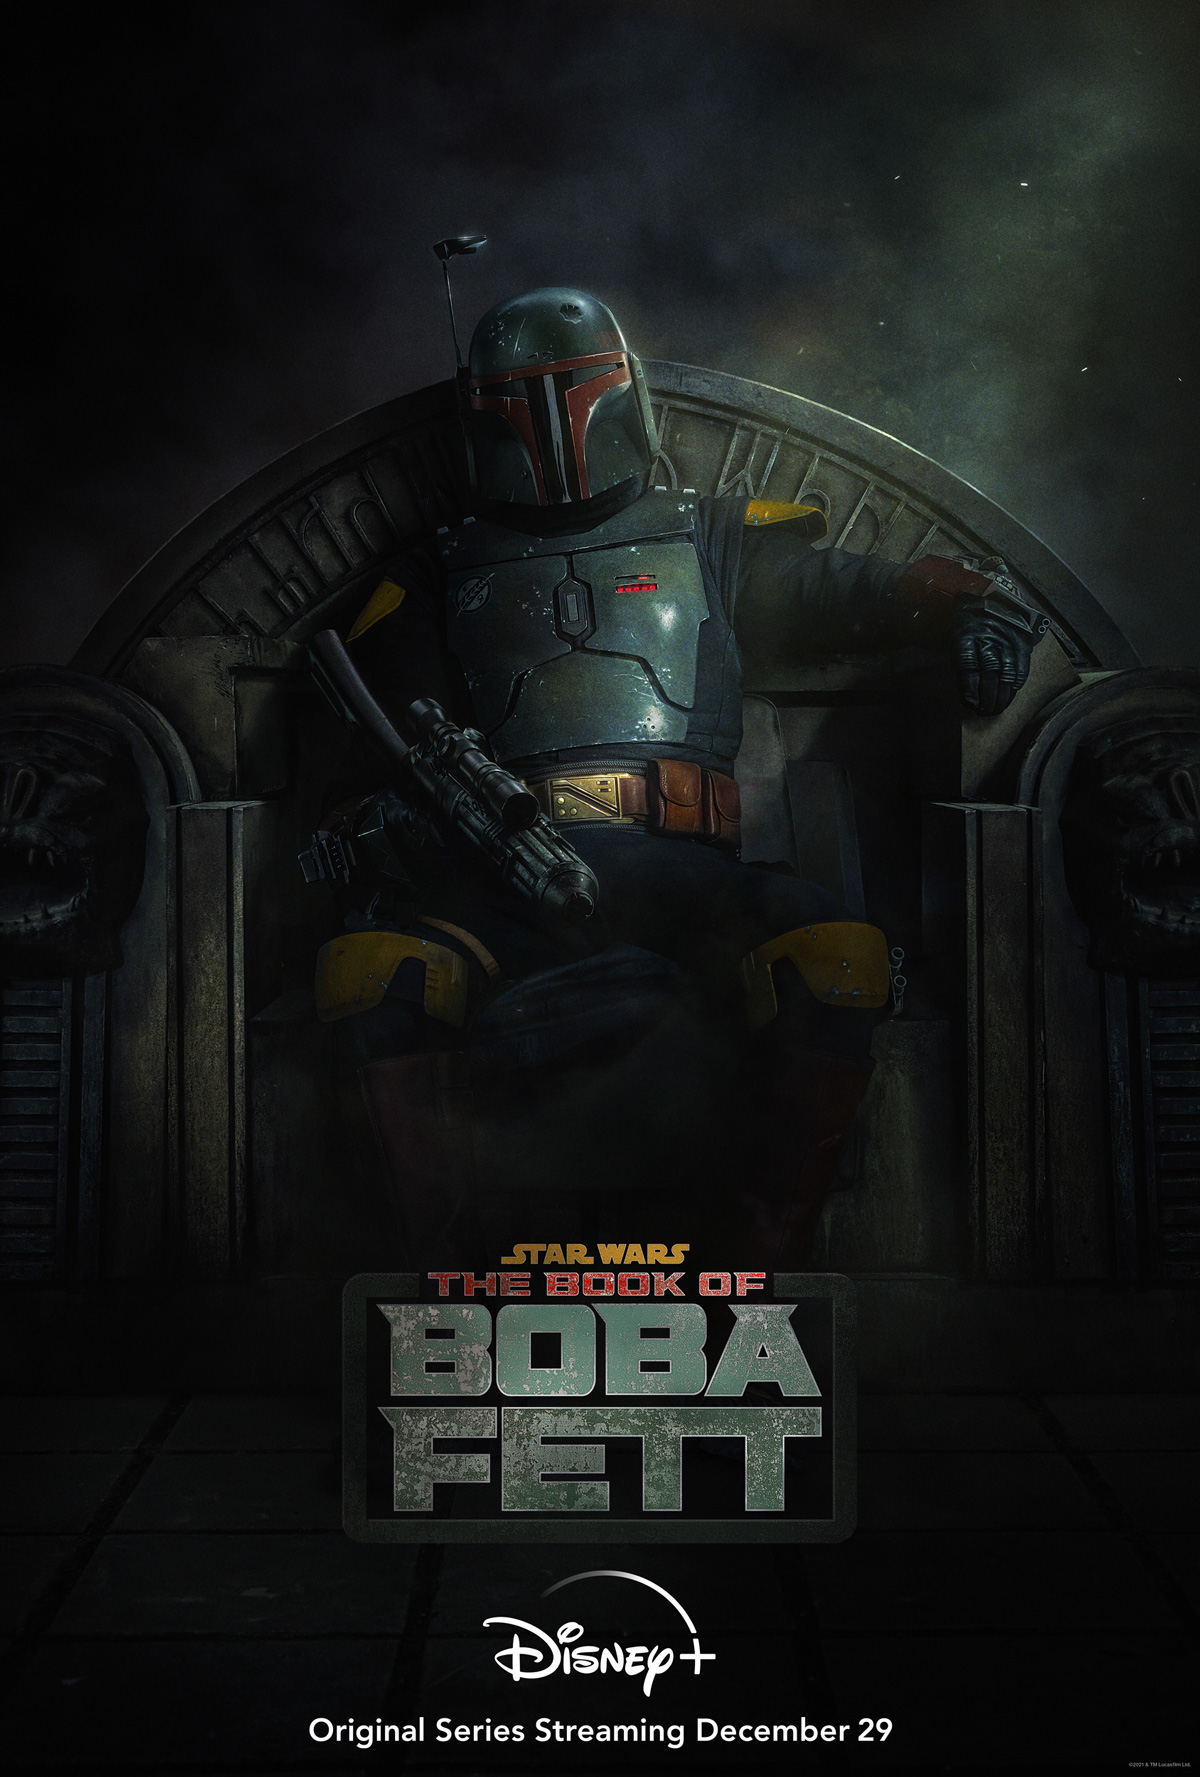 The Book of Boba Fett: The start date of the Star Wars series has been set